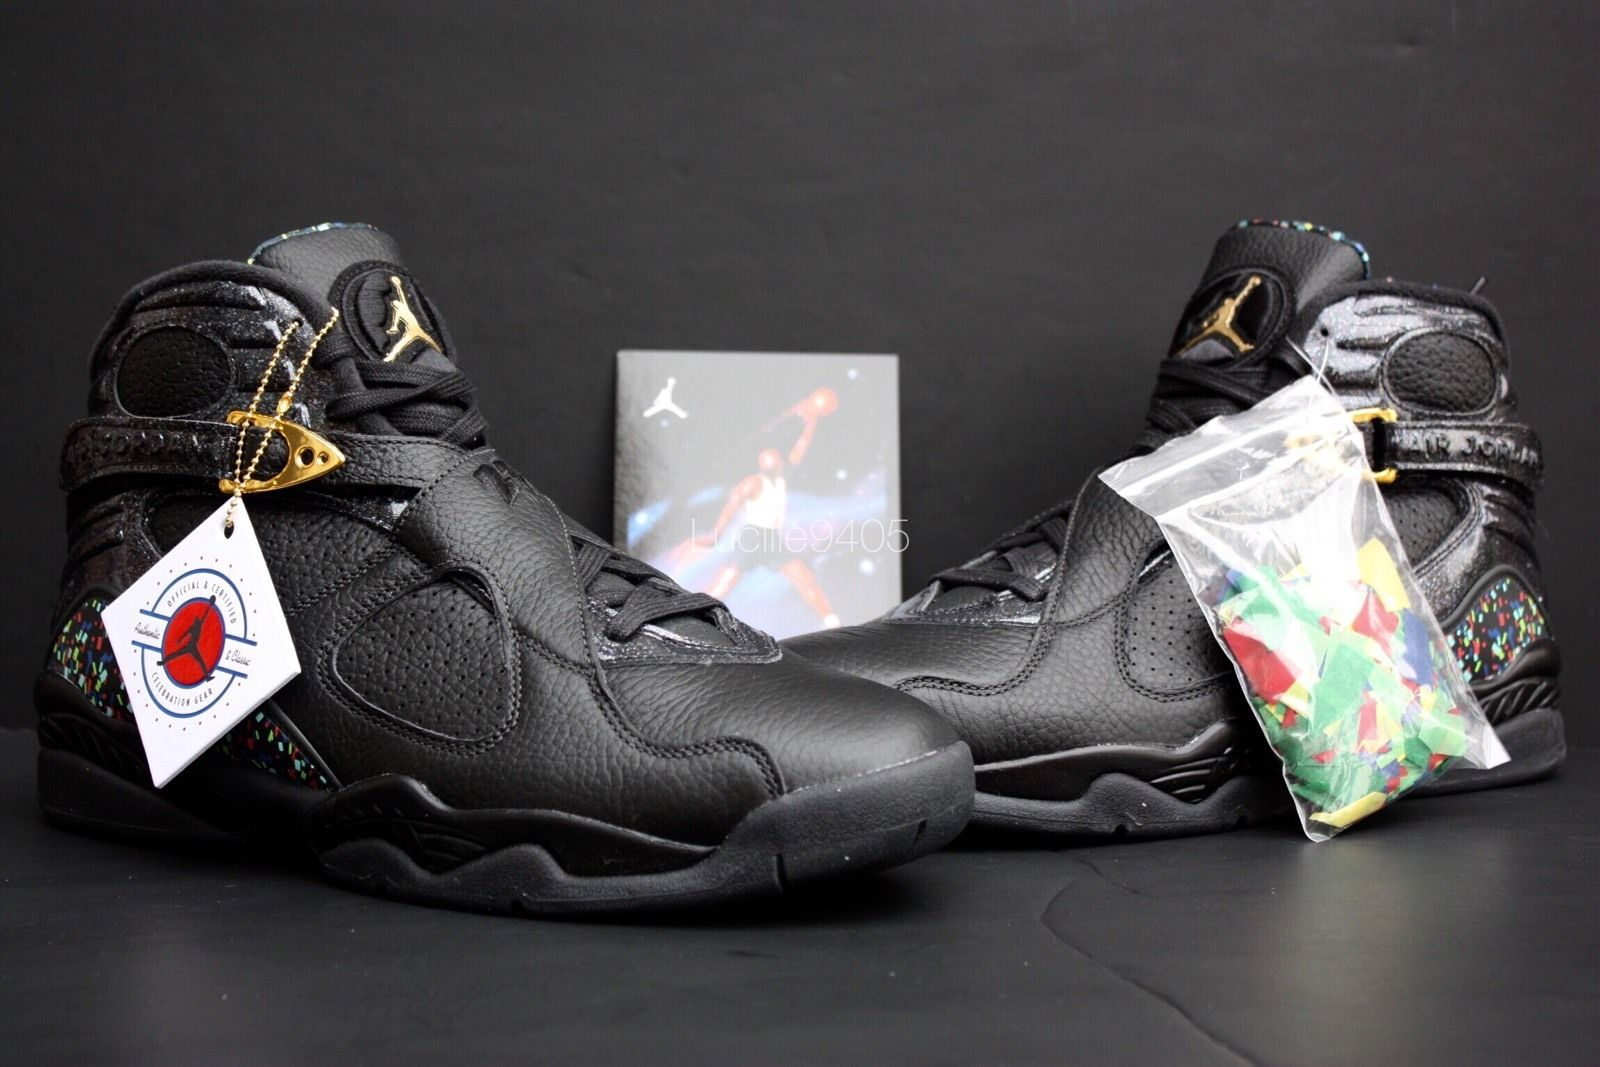 hot sale online dc342 90e33 aj8 Archives - Air 23 - Air Jordan Release Dates, Foamposite ...